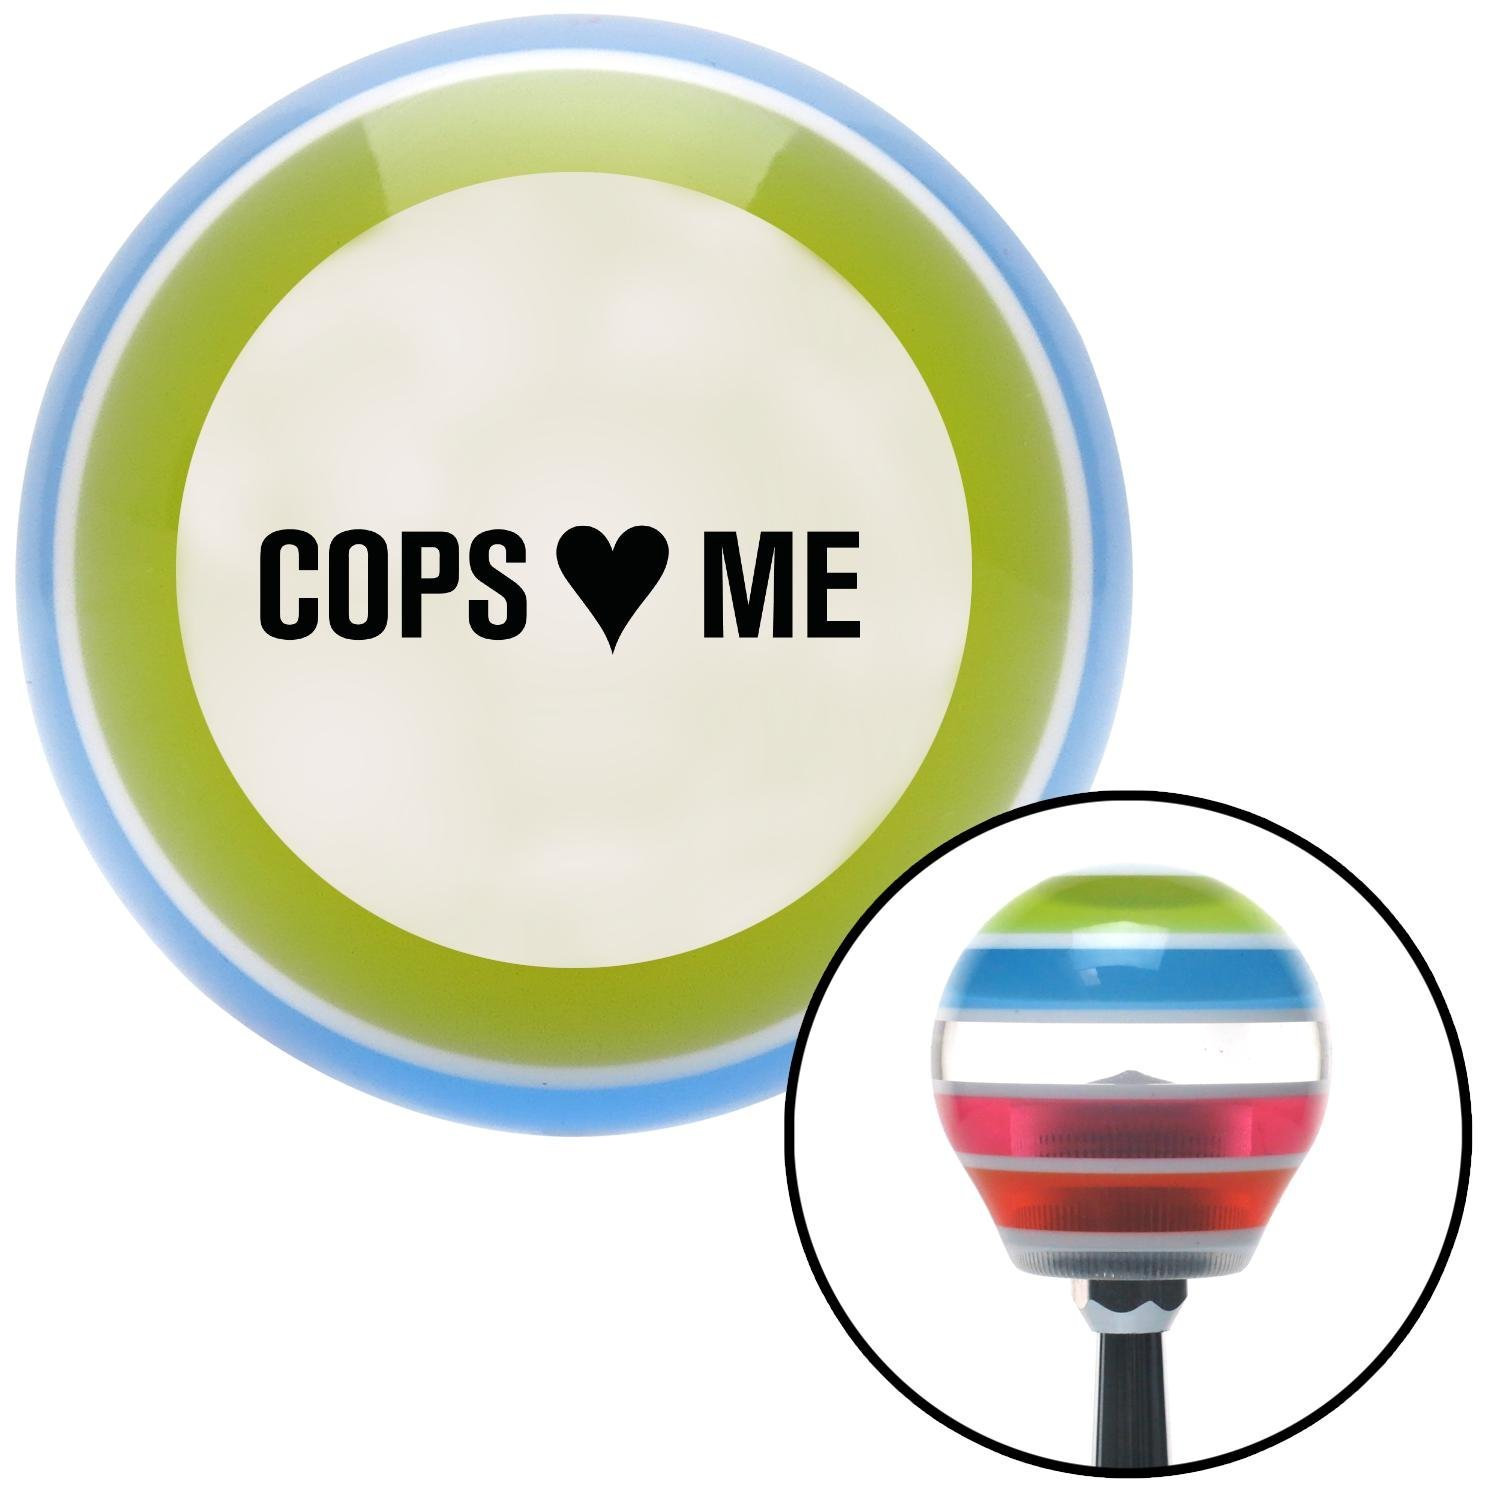 Black Cops 3 Me American Shifter 137738 Stripe Shift Knob with M16 x 1.5 Insert